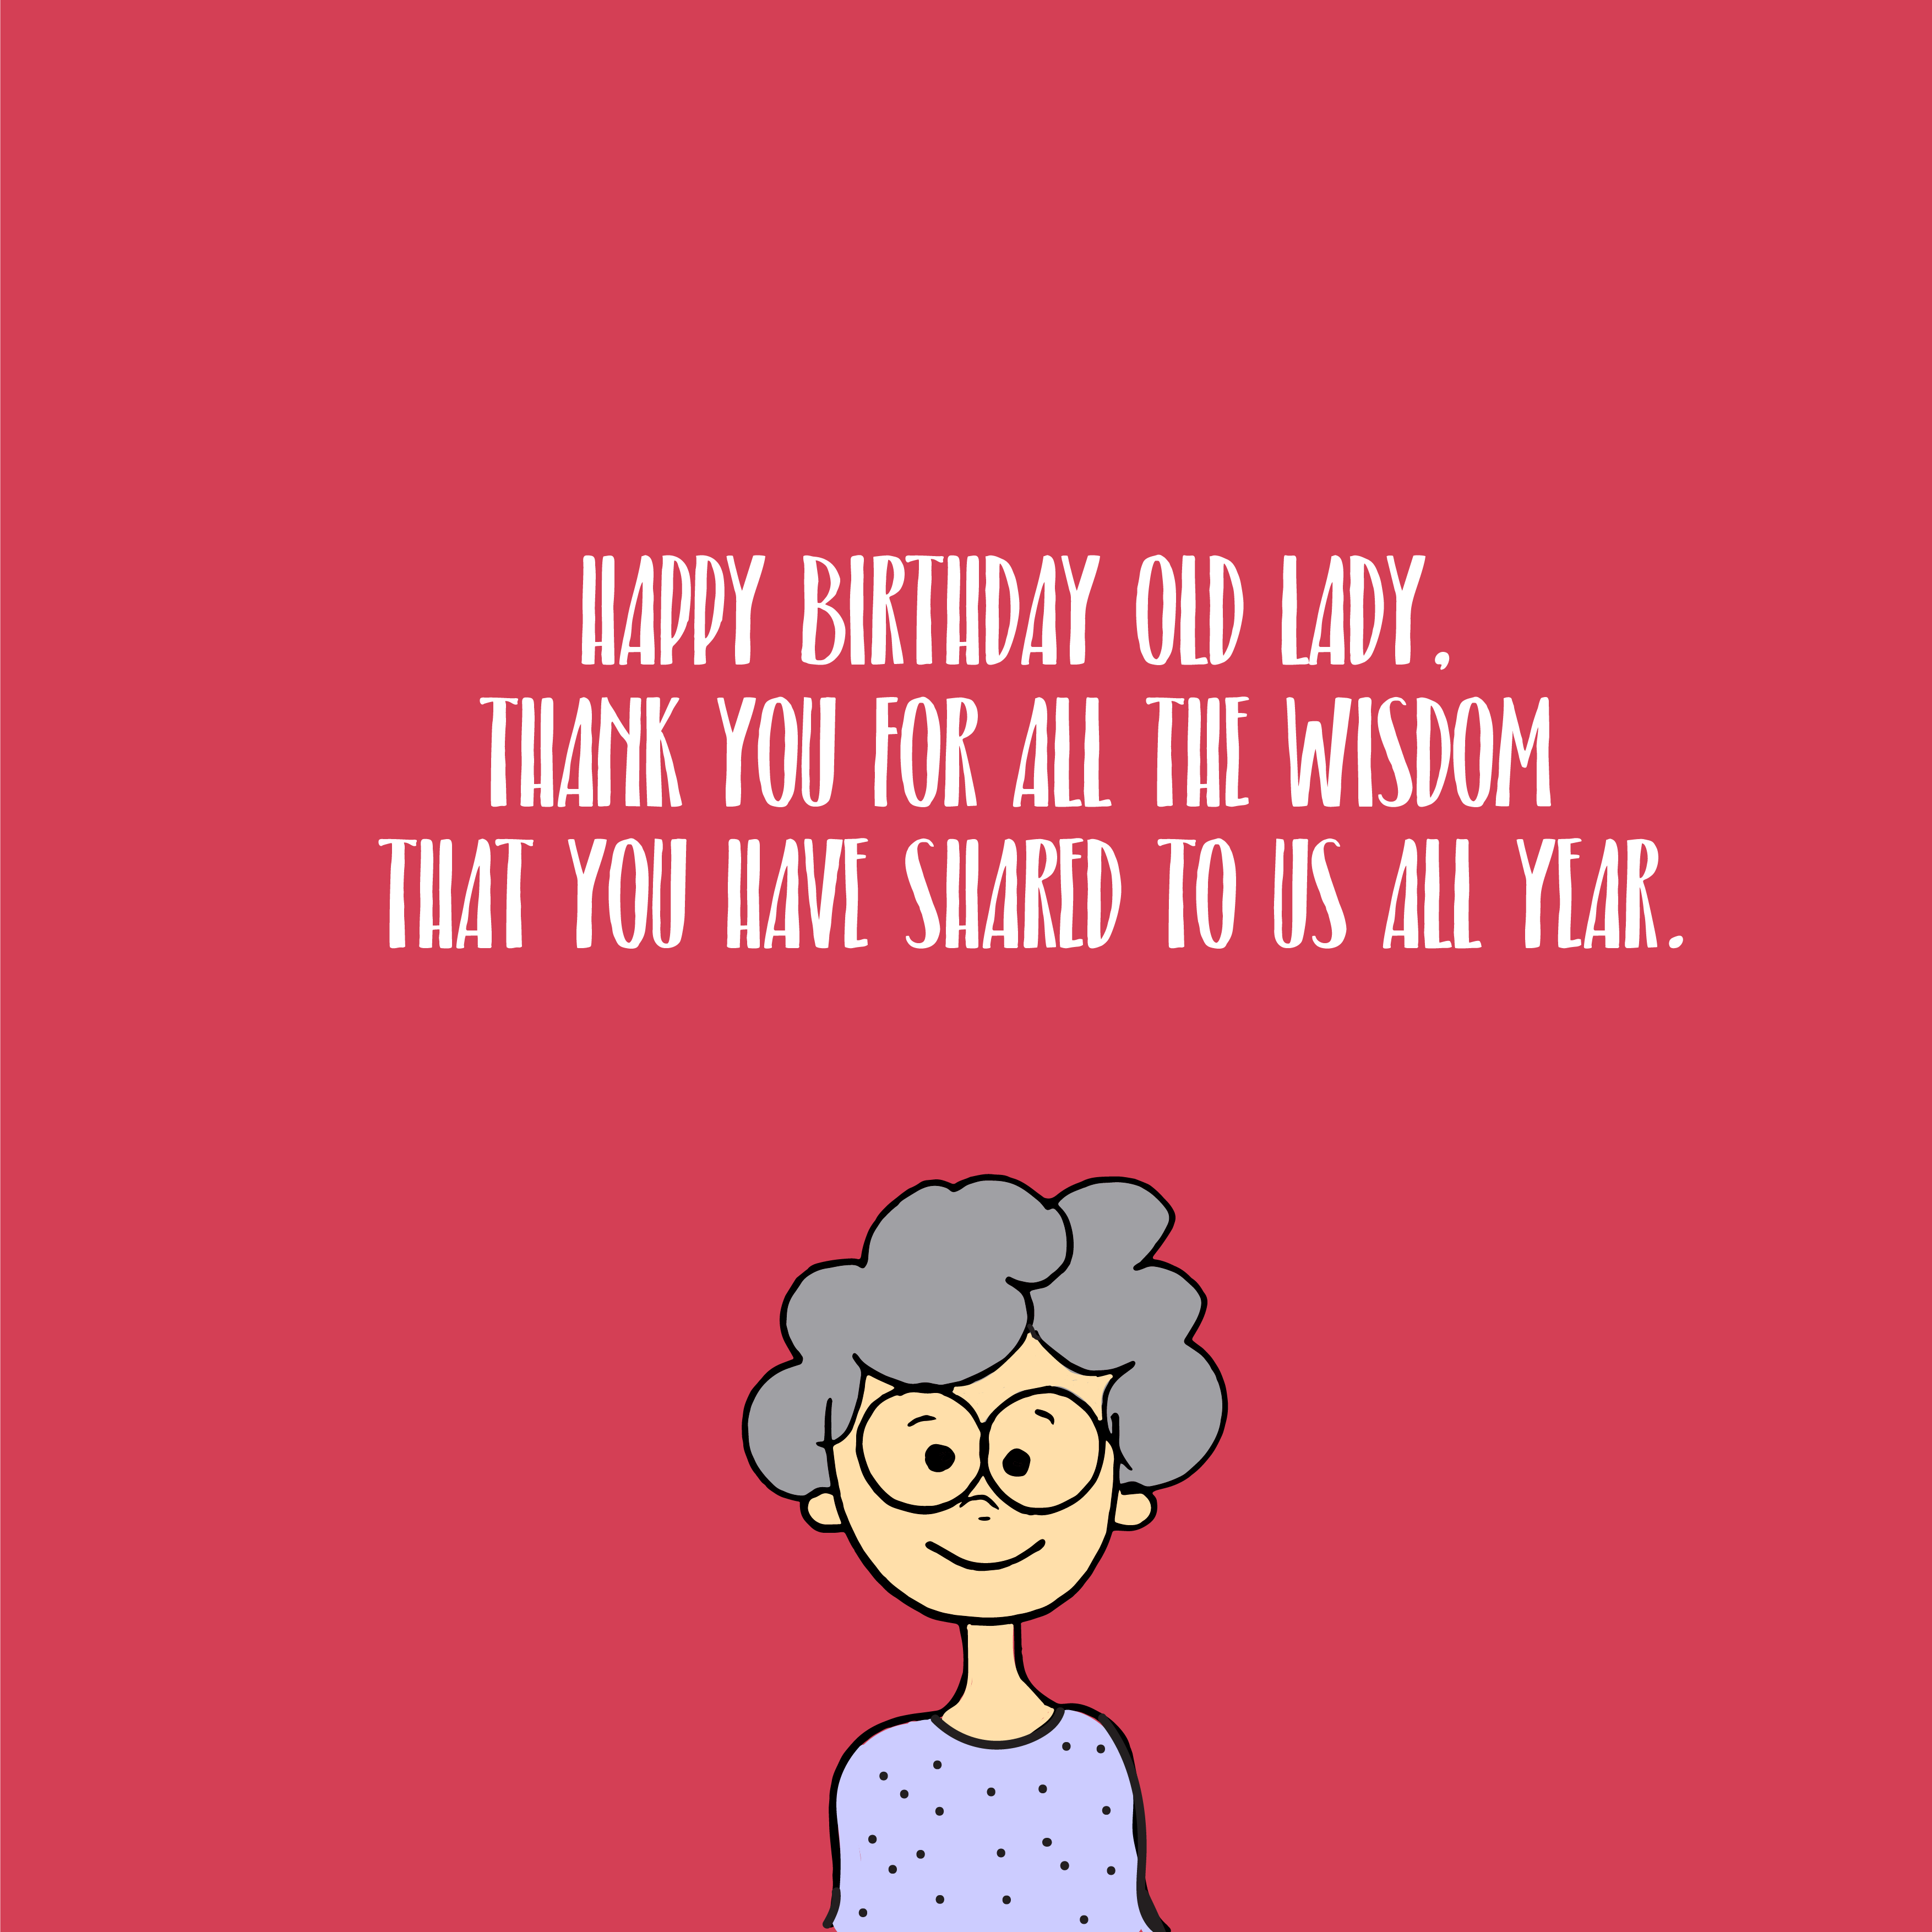 birthday-wishes-for-old-lady-08